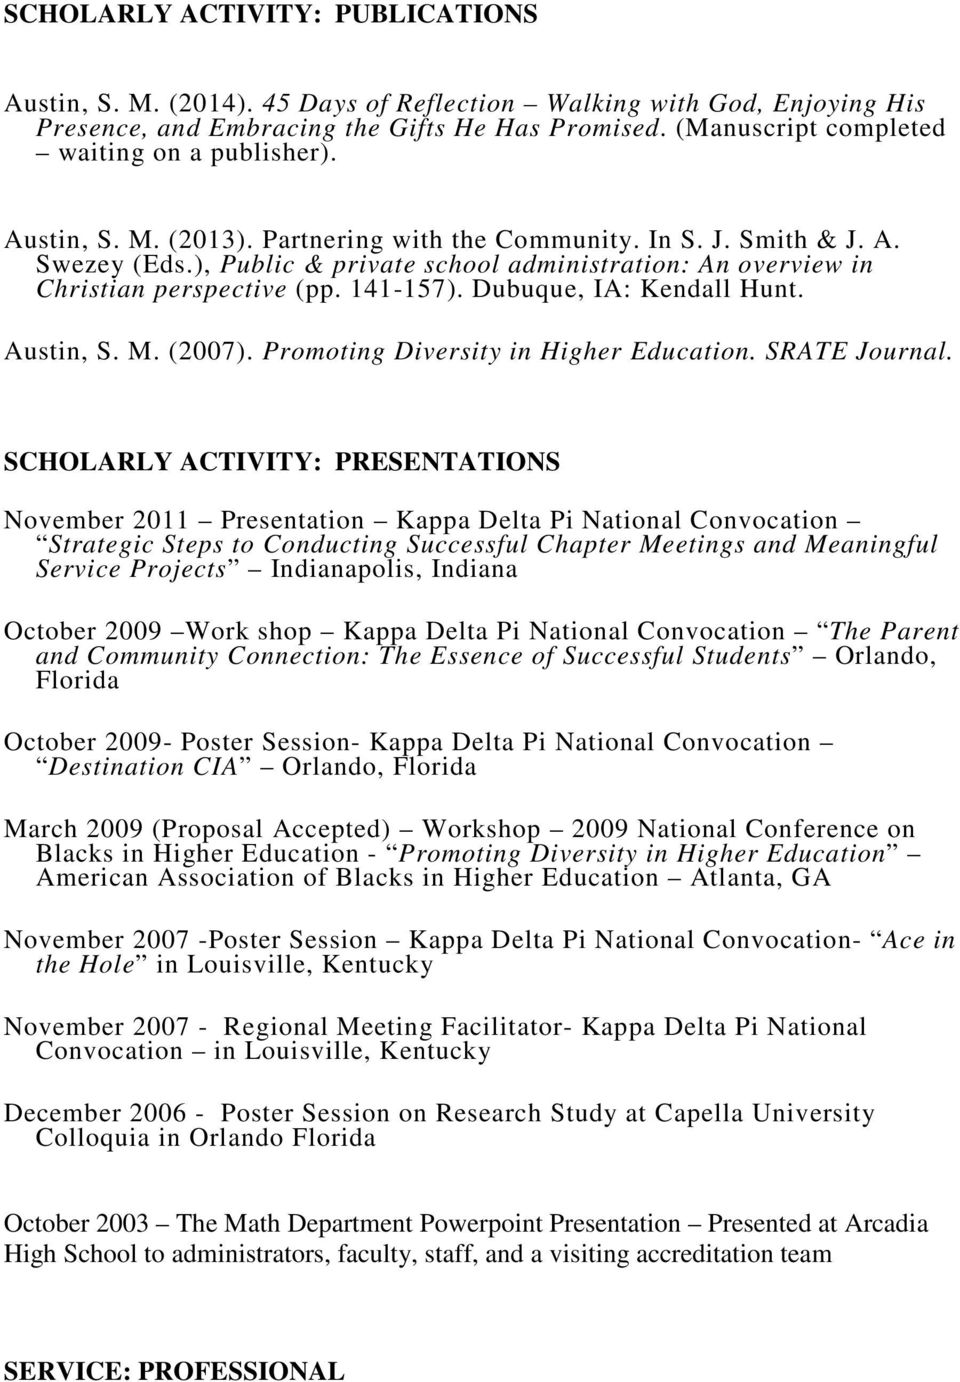 ), Public & private school administration: An overview in Christian perspective (pp. 141-157). Dubuque, IA: Kendall Hunt. Austin, S. M. (2007). Promoting Diversity in Higher Education. SRATE Journal.